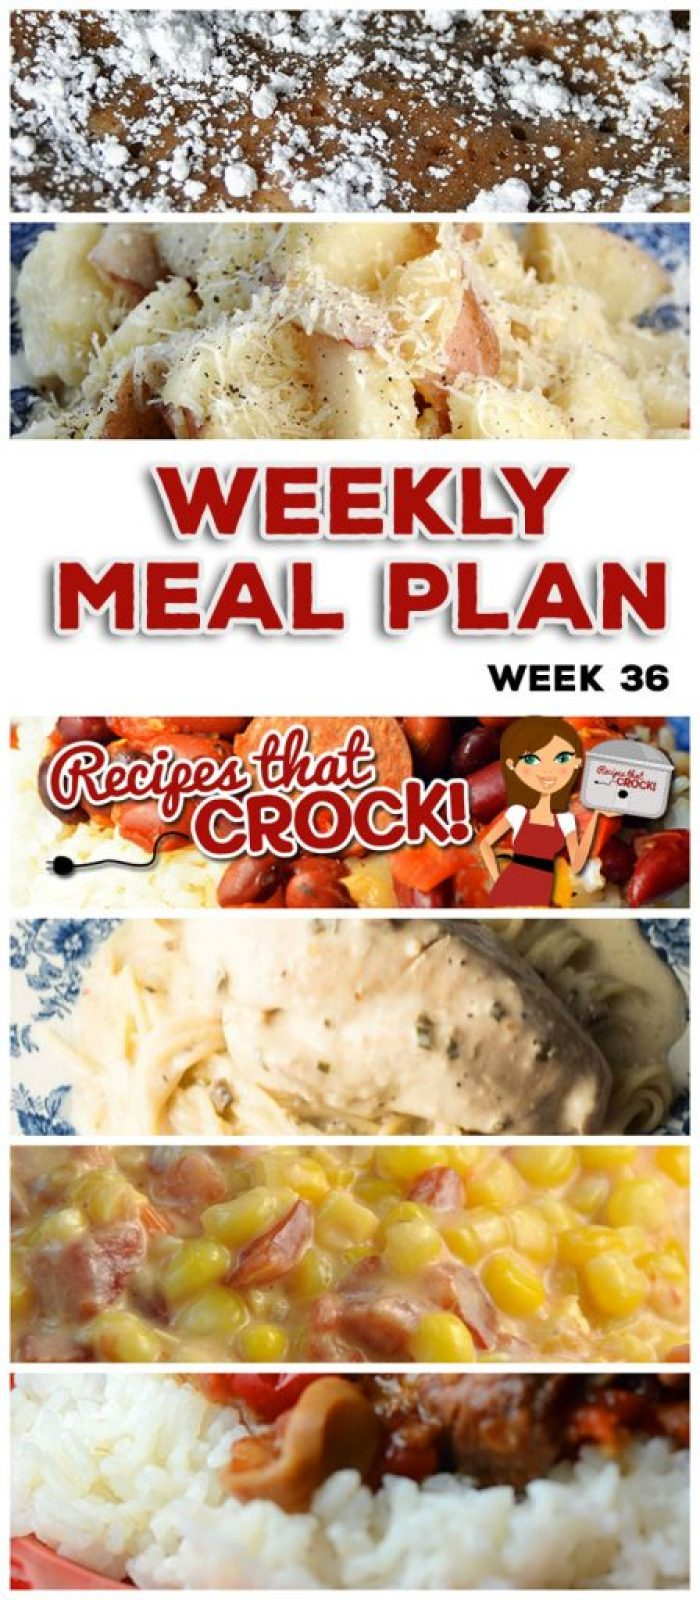 This week's weekly menu features Crock Pot Angel Chicken, Crock Pot Garlic Parmesan Potatoes, Crock Pot Bacon Bubble Up Bread, Slow Cooker Ranch Pork Chops, Extra Cheesy Crock Pot Mac n' Cheese, Crock Pot White Chicken Chili, Slow Cooker Red Beans and Sausage, Crock Pot Pepper Steak, Crock Pot Cheesy Fiesta Corn, Crock Pot Cherry Delight, Sweet and Salty Crock Pot Party Mix and Crock Pot Apple Cinnamon Cream Cheese Squares.